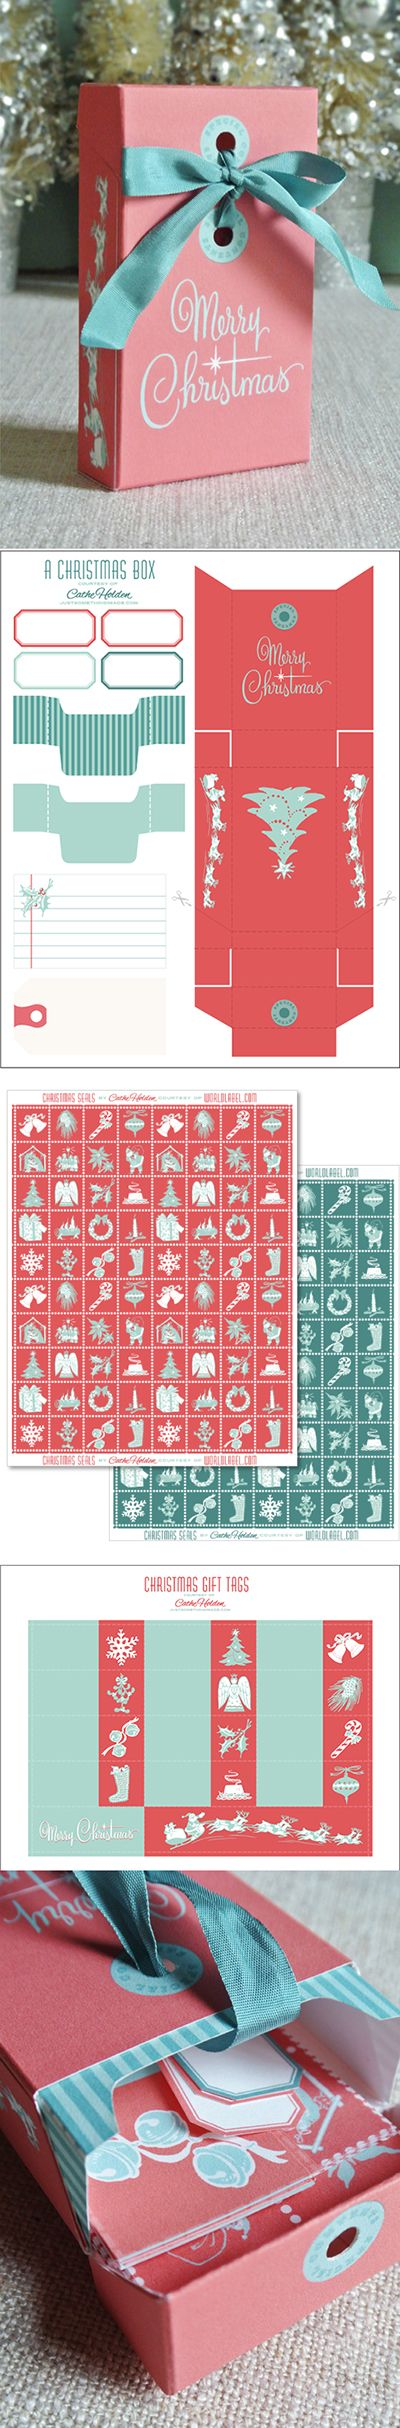 FREE Christmas printable collection - Box template, Tags, Labels, bookmarks, envelope seals, labels, gift tags, etc.